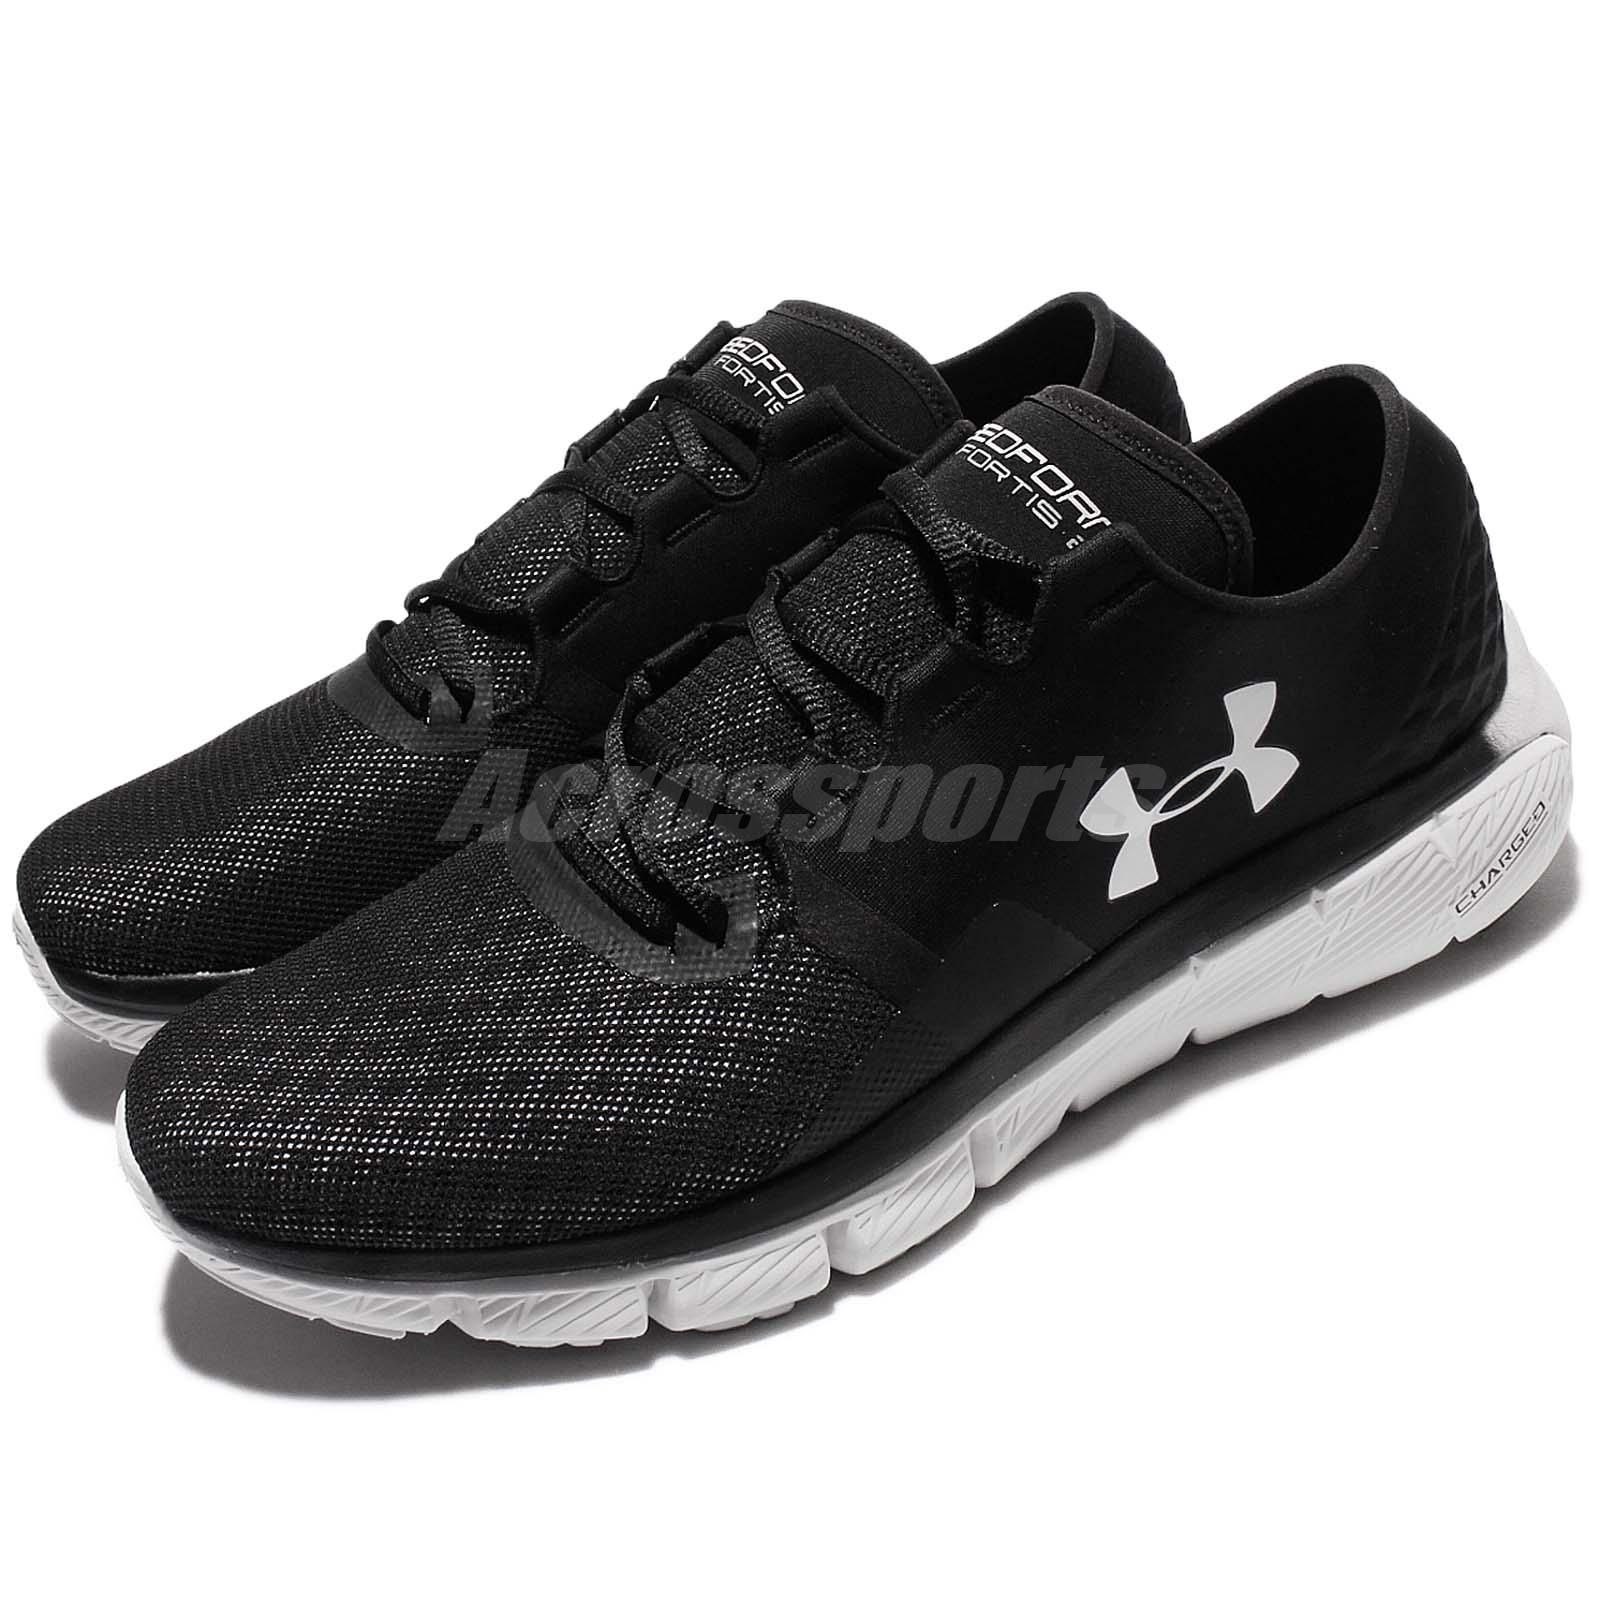 Under Armour Fortis  Running Shoes